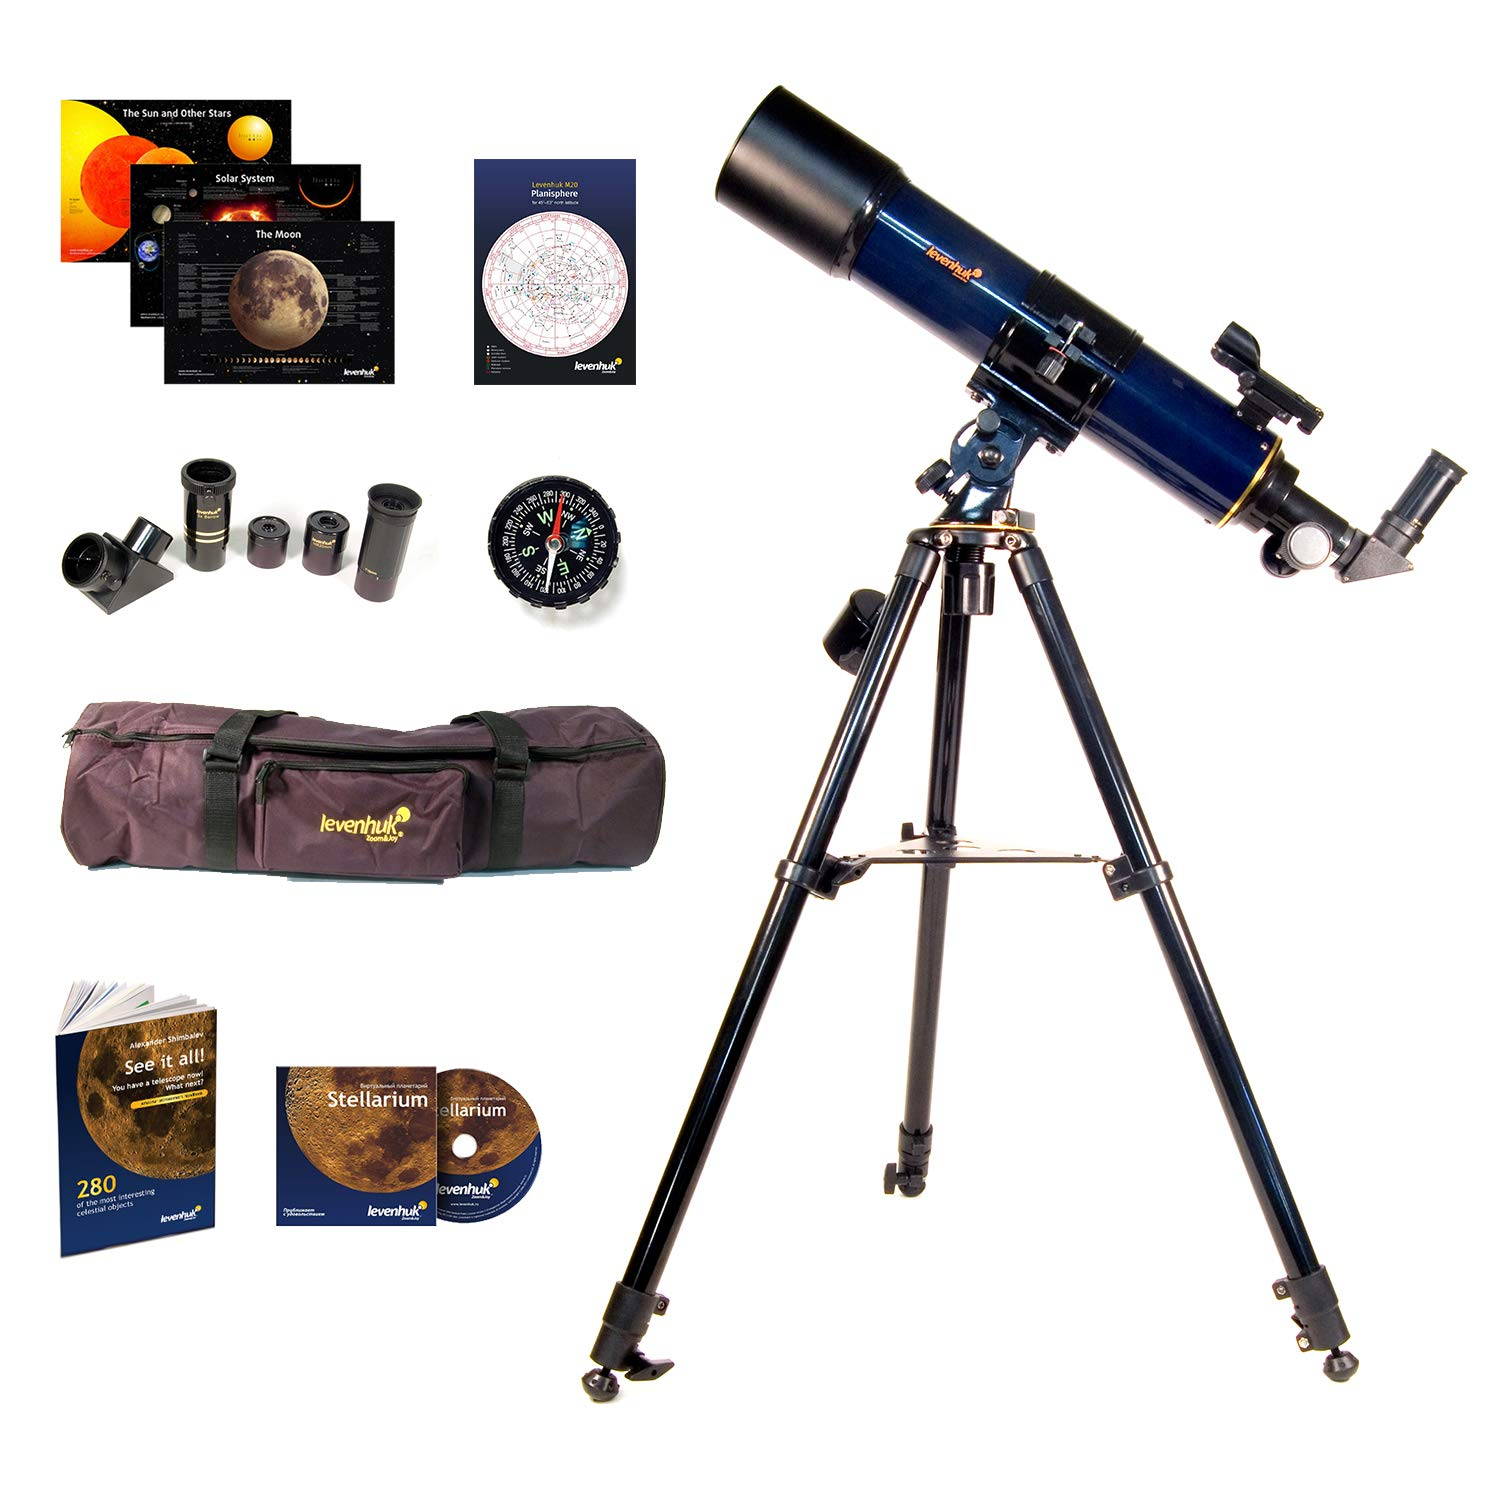 Levenhuk Strike 90 Plus Refractor AZ Mount Telescope - Portable Travel Scope with case and Accessory kit for Beginners by Levenhuk